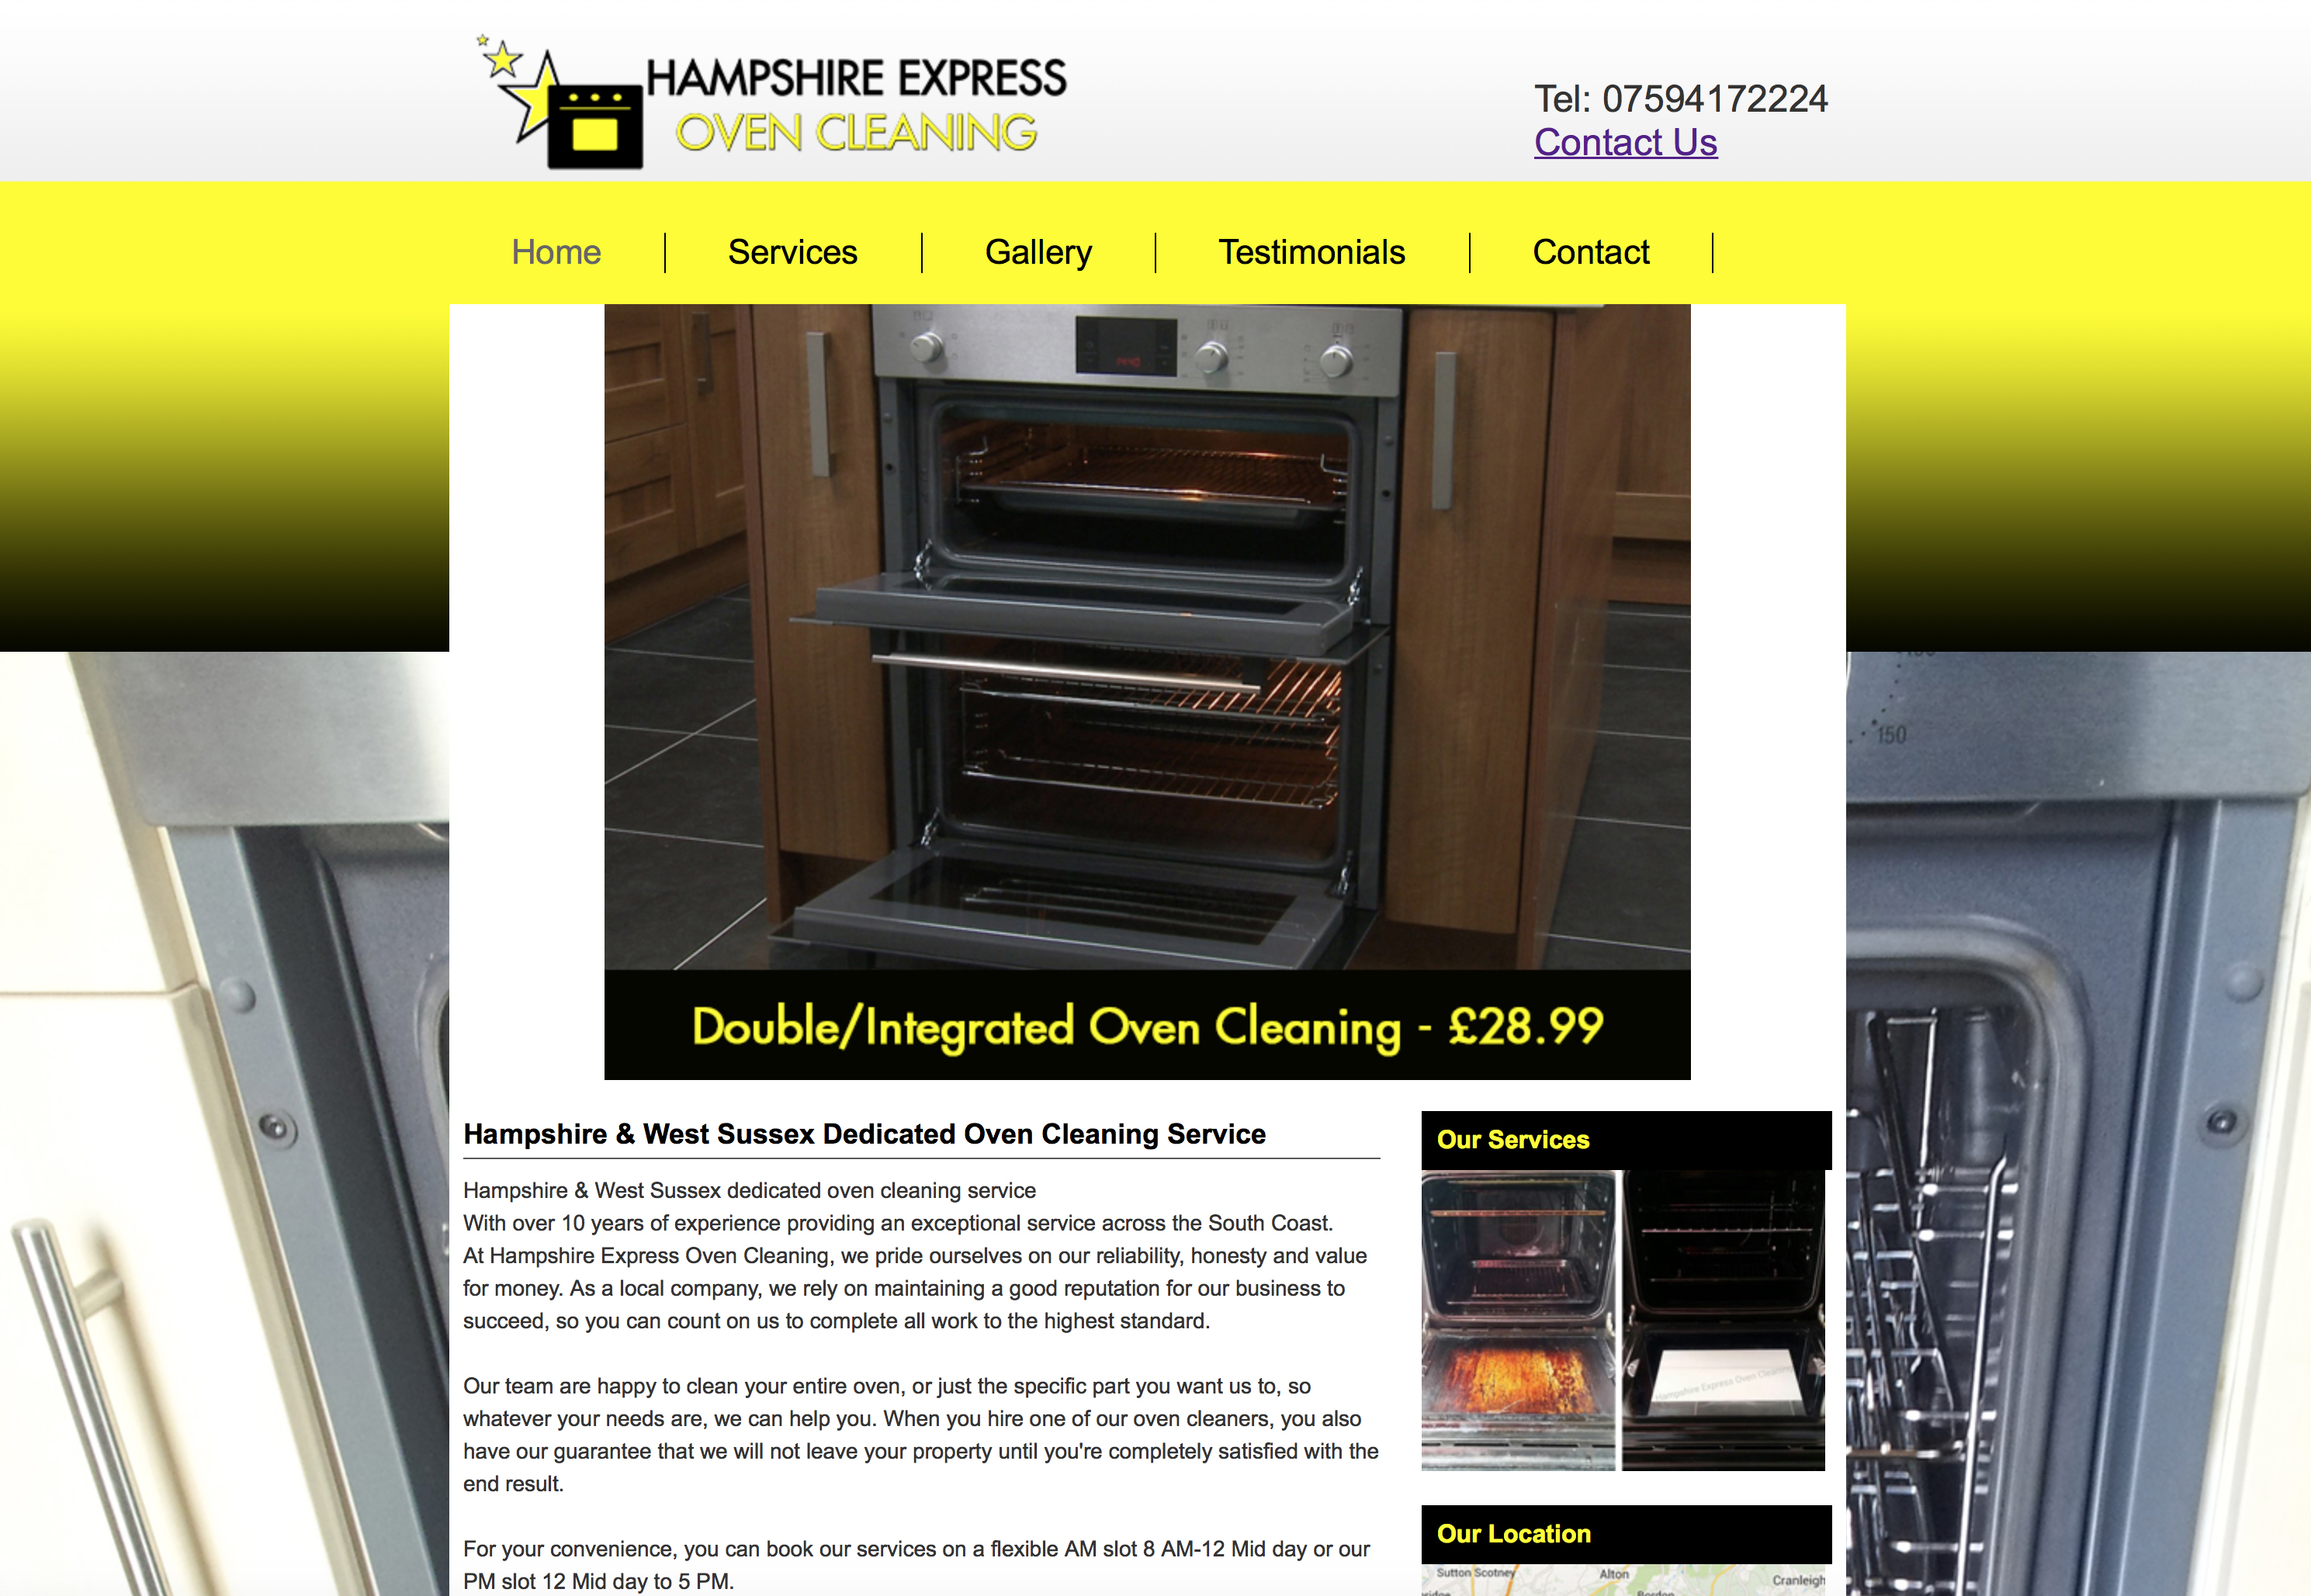 hampshire-express-oven-cleaning-website